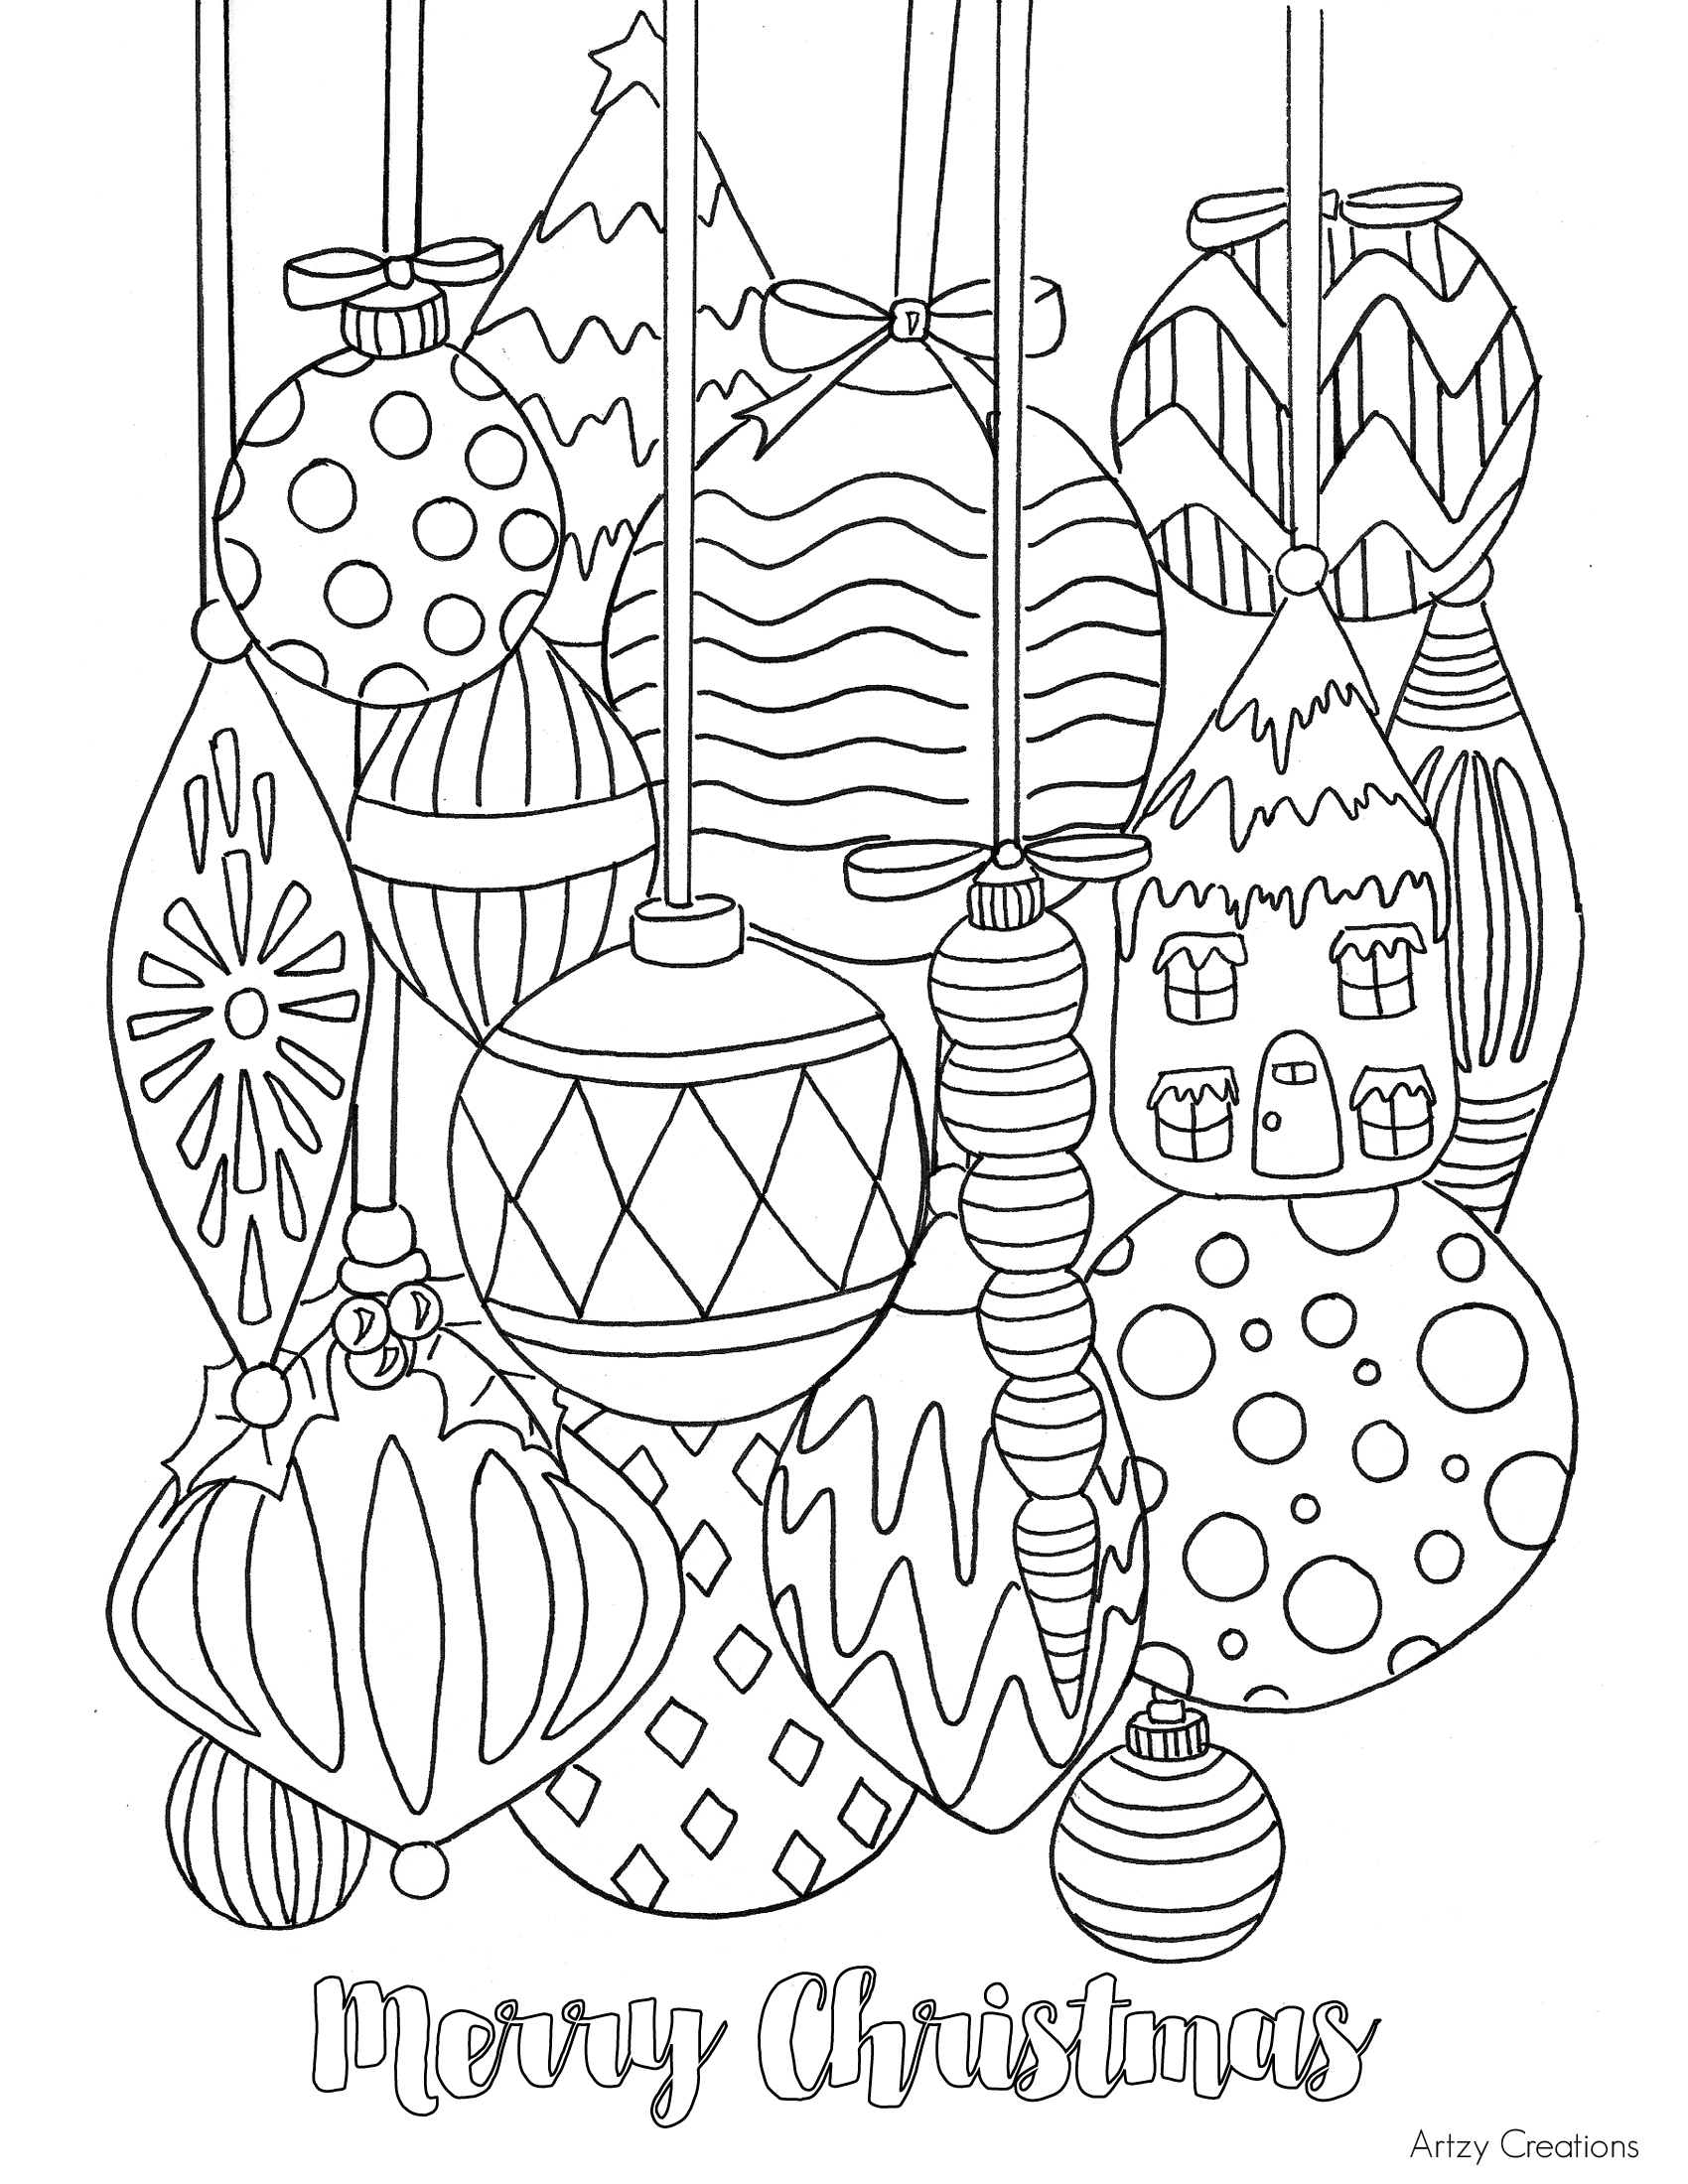 Free Coloring Pages To Print For Christmas. DOWNLOAD YOUR FREE CHRISTMAS ORNAMENT COLORING PAGE HERE  Free Christmas Ornament Coloring Page TGIF This Grandma is Fun